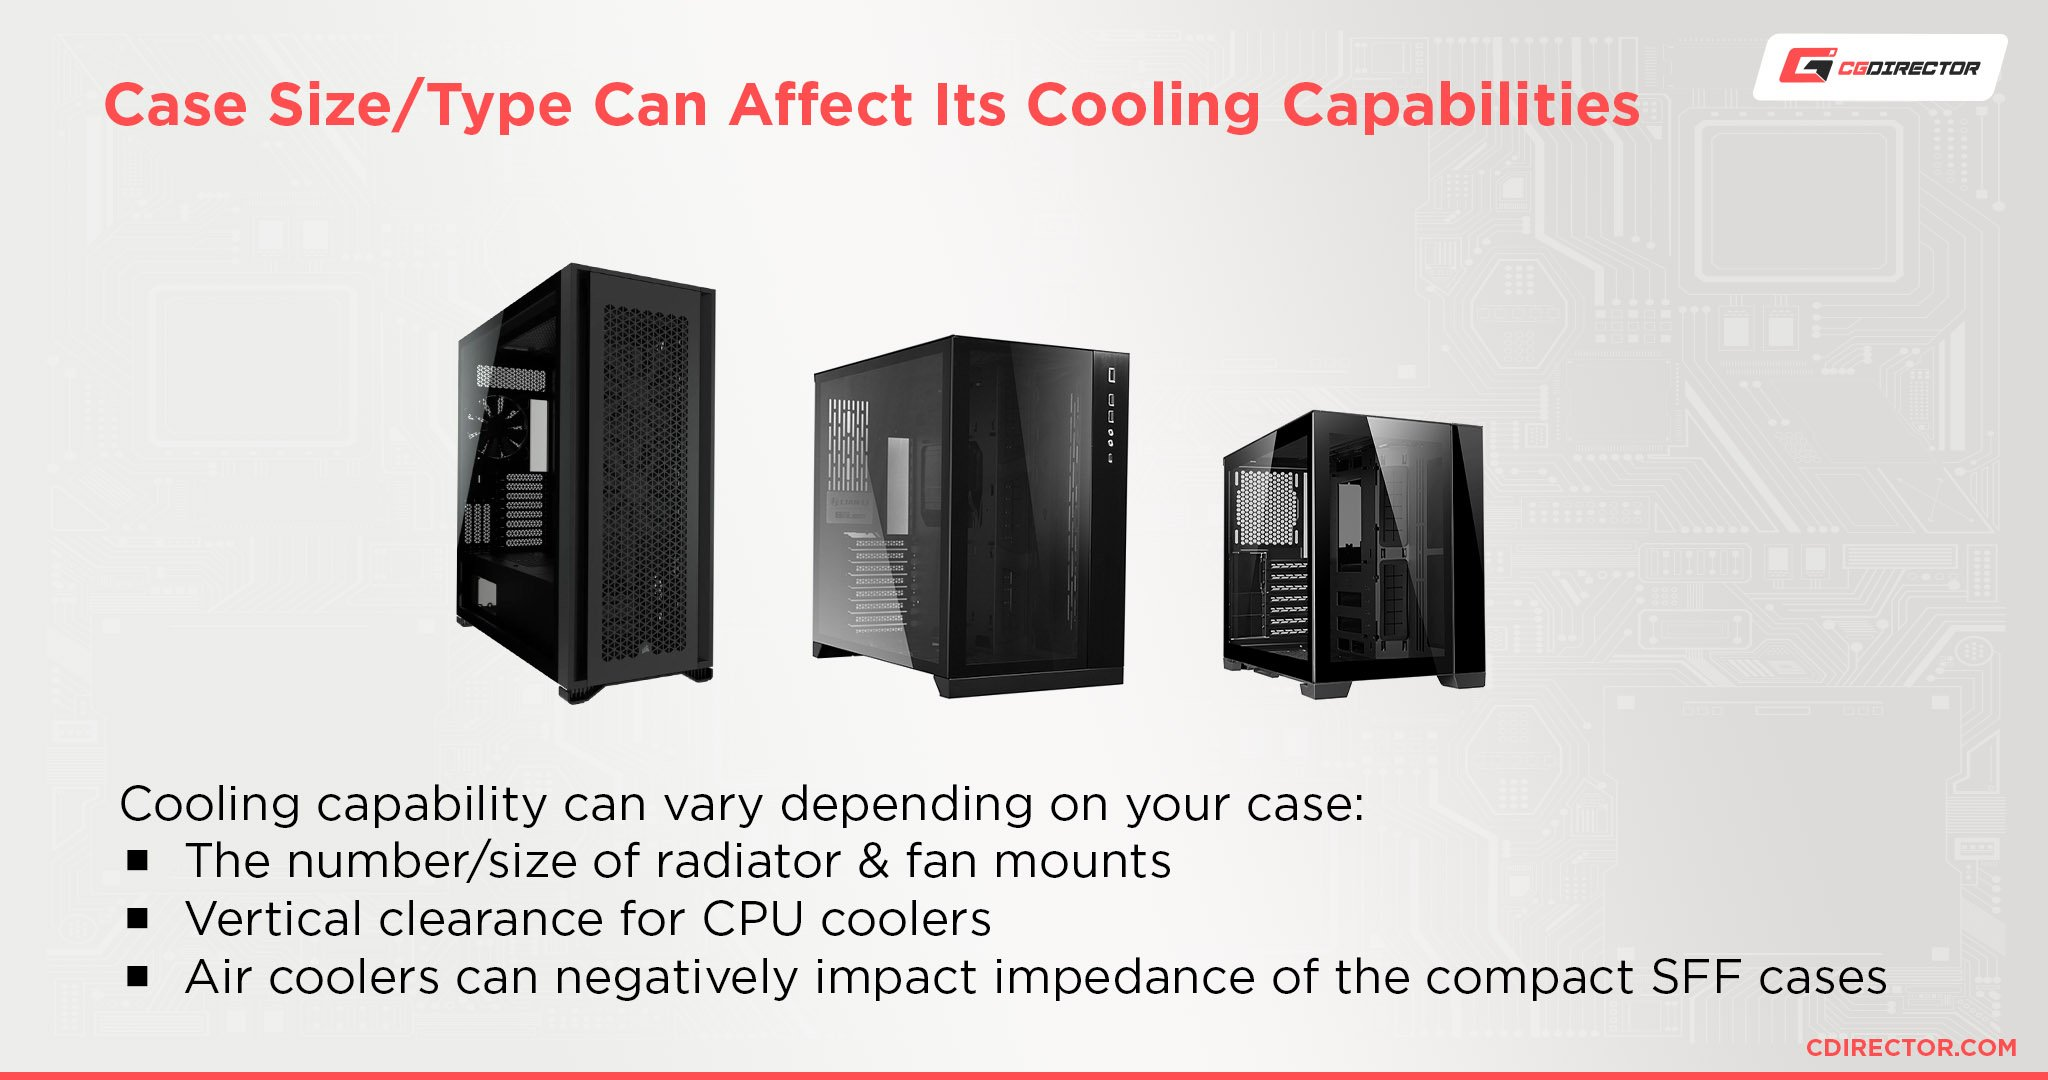 Case Size and Cooling Capabilities